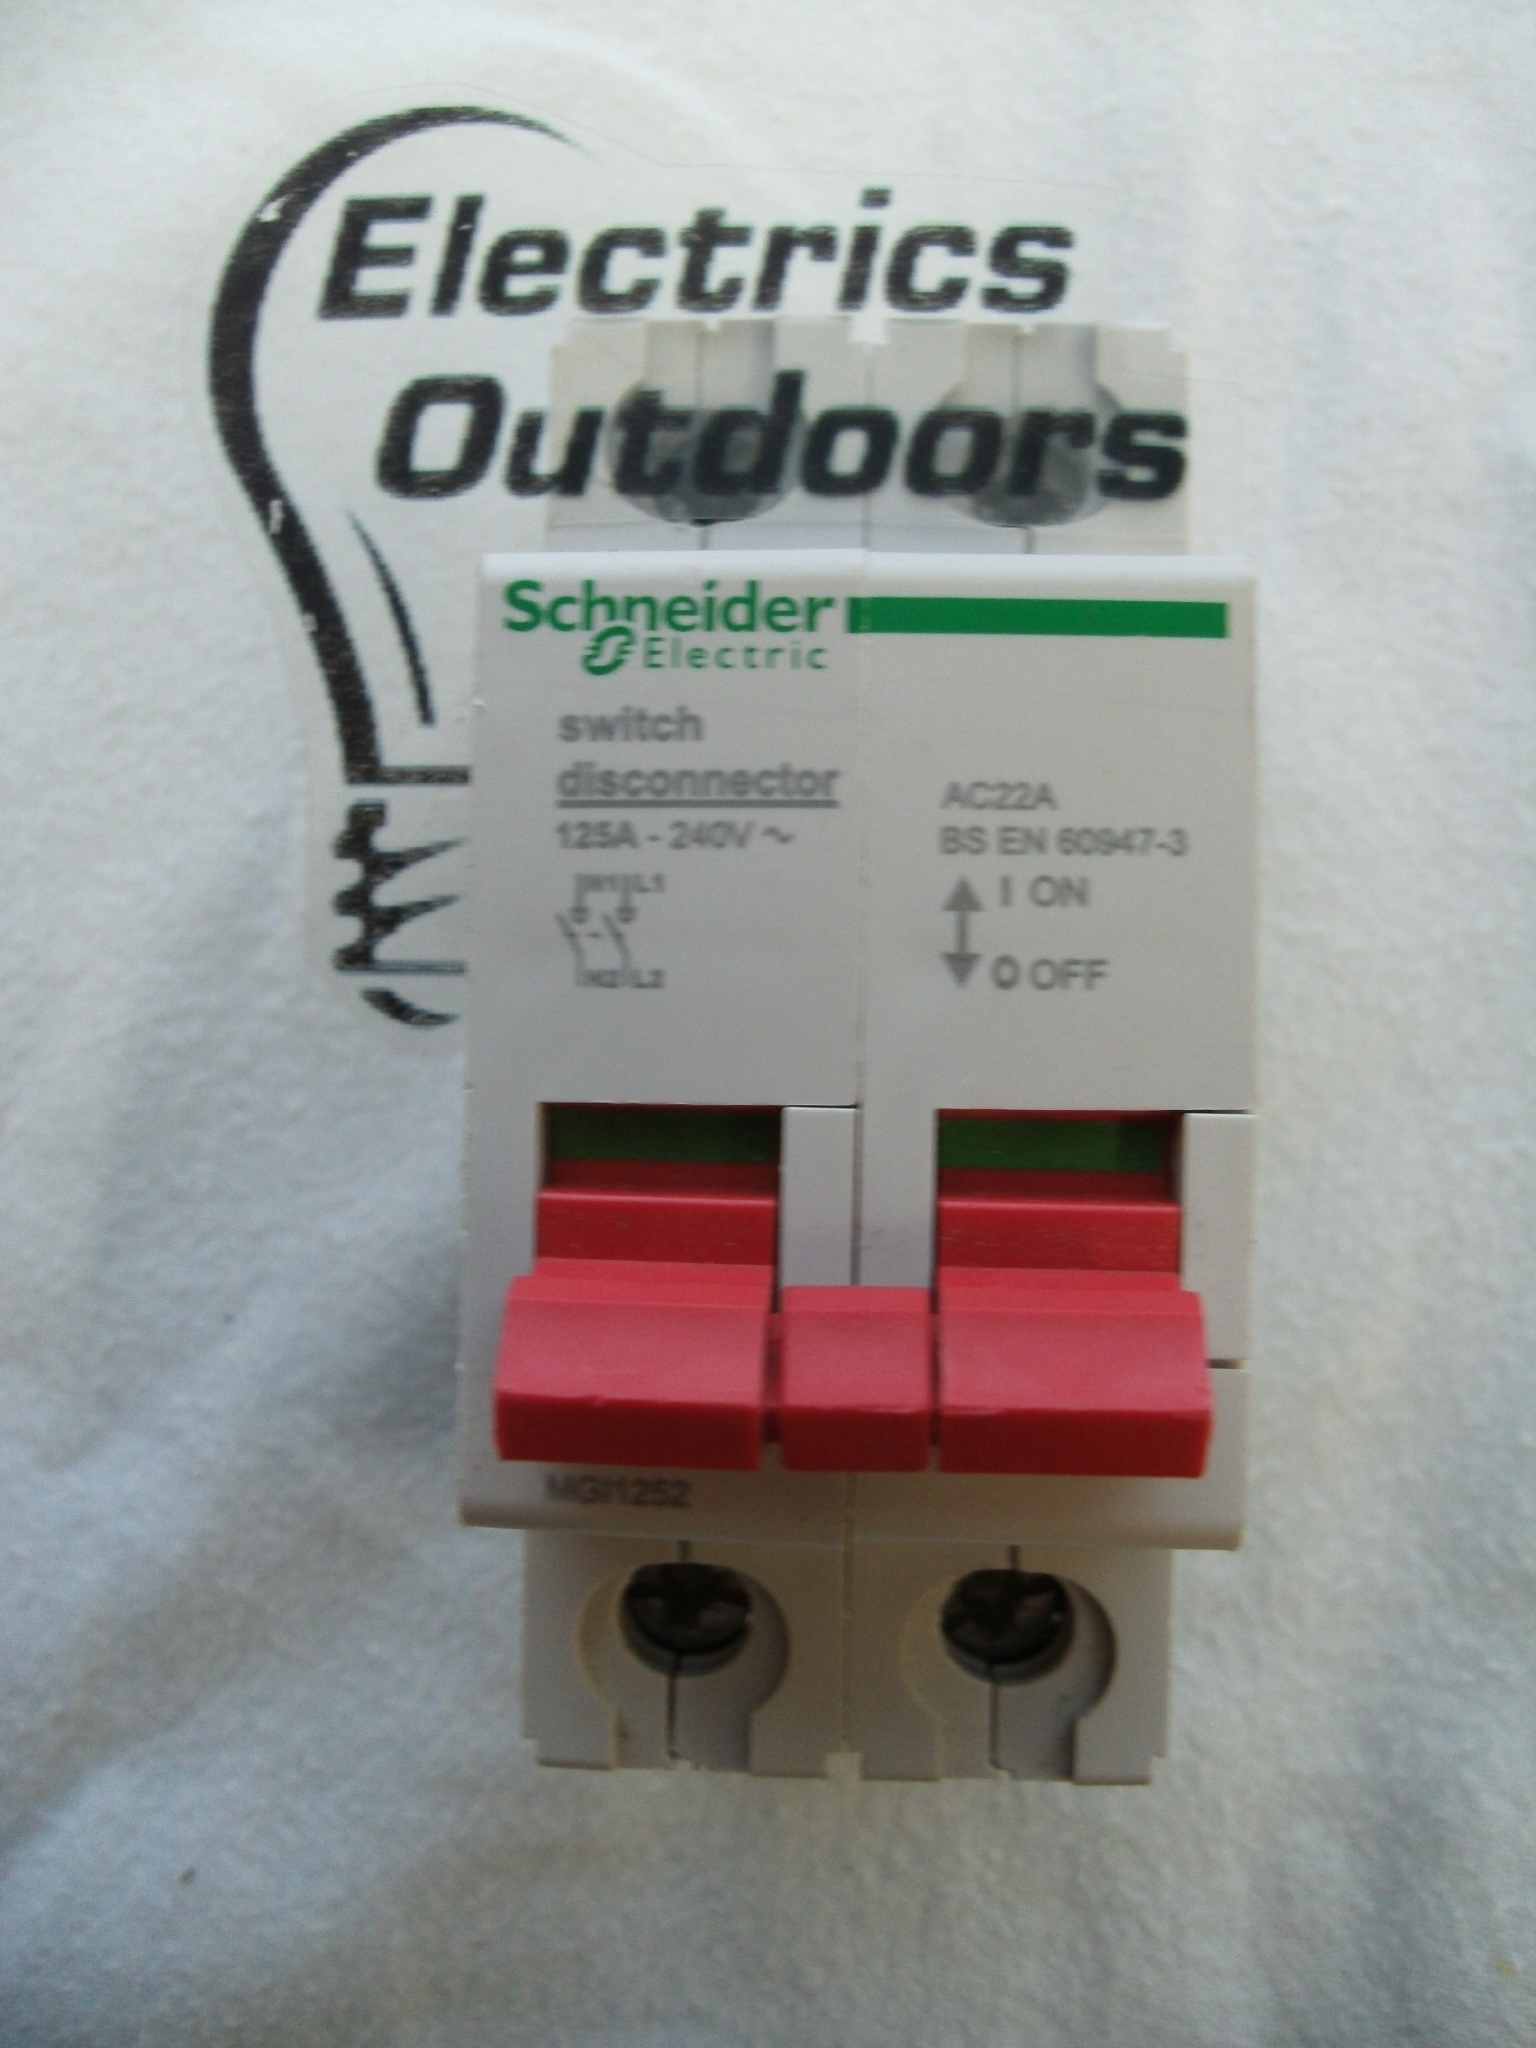 SCHNEIDER ELECTRIC 125 AMP DOUBLE POLE SWITCH DISCONNECTOR MGI1252 BS EN 60947